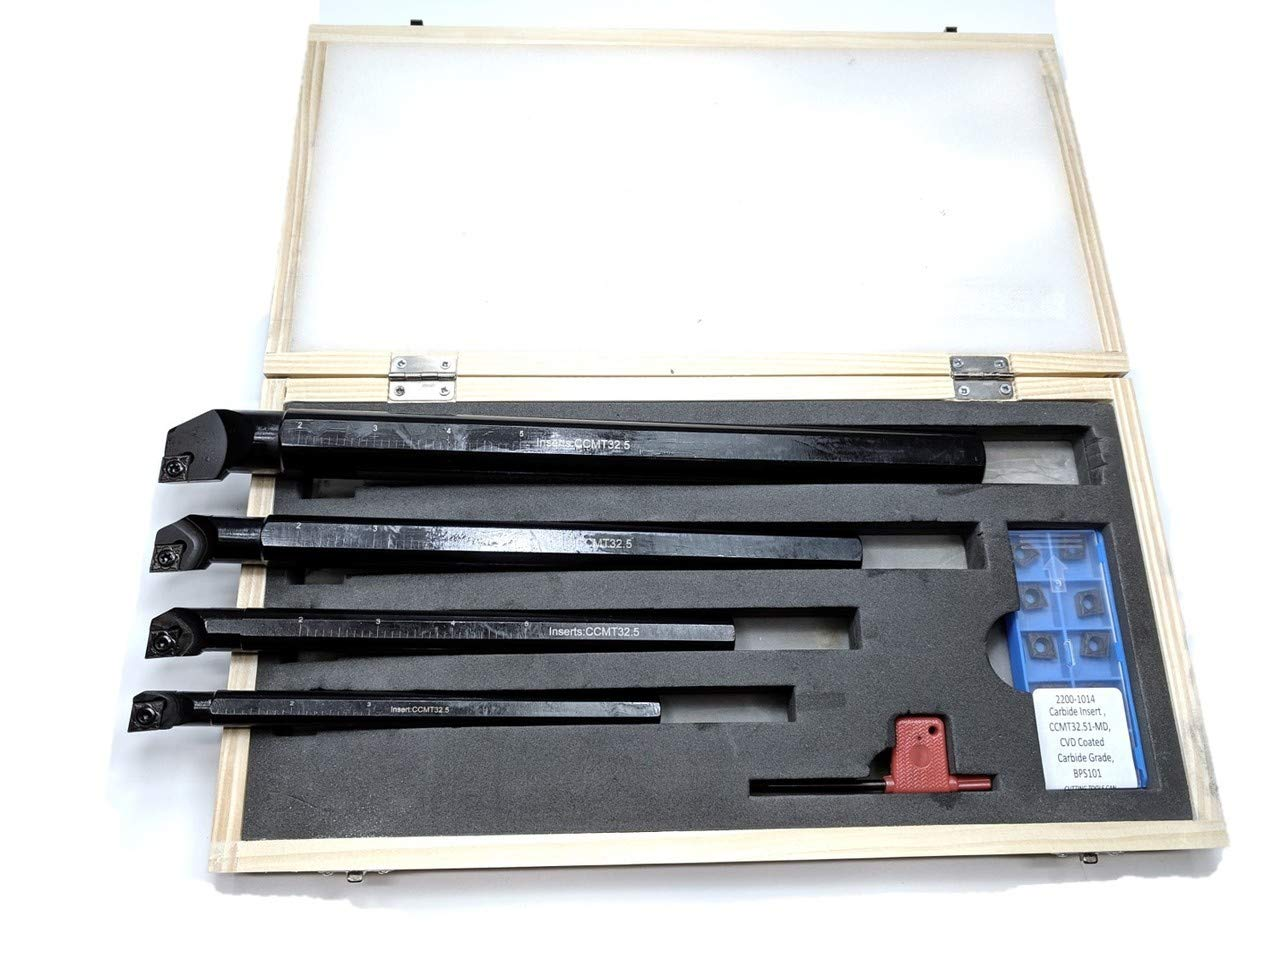 SCLCR 4 Pc Indexable Boring Bar Set with 14 Carbide CVD Coating CCMT32.51 Inserts 1//2 AccusizeTools P252-S416 1 3//4 5//8